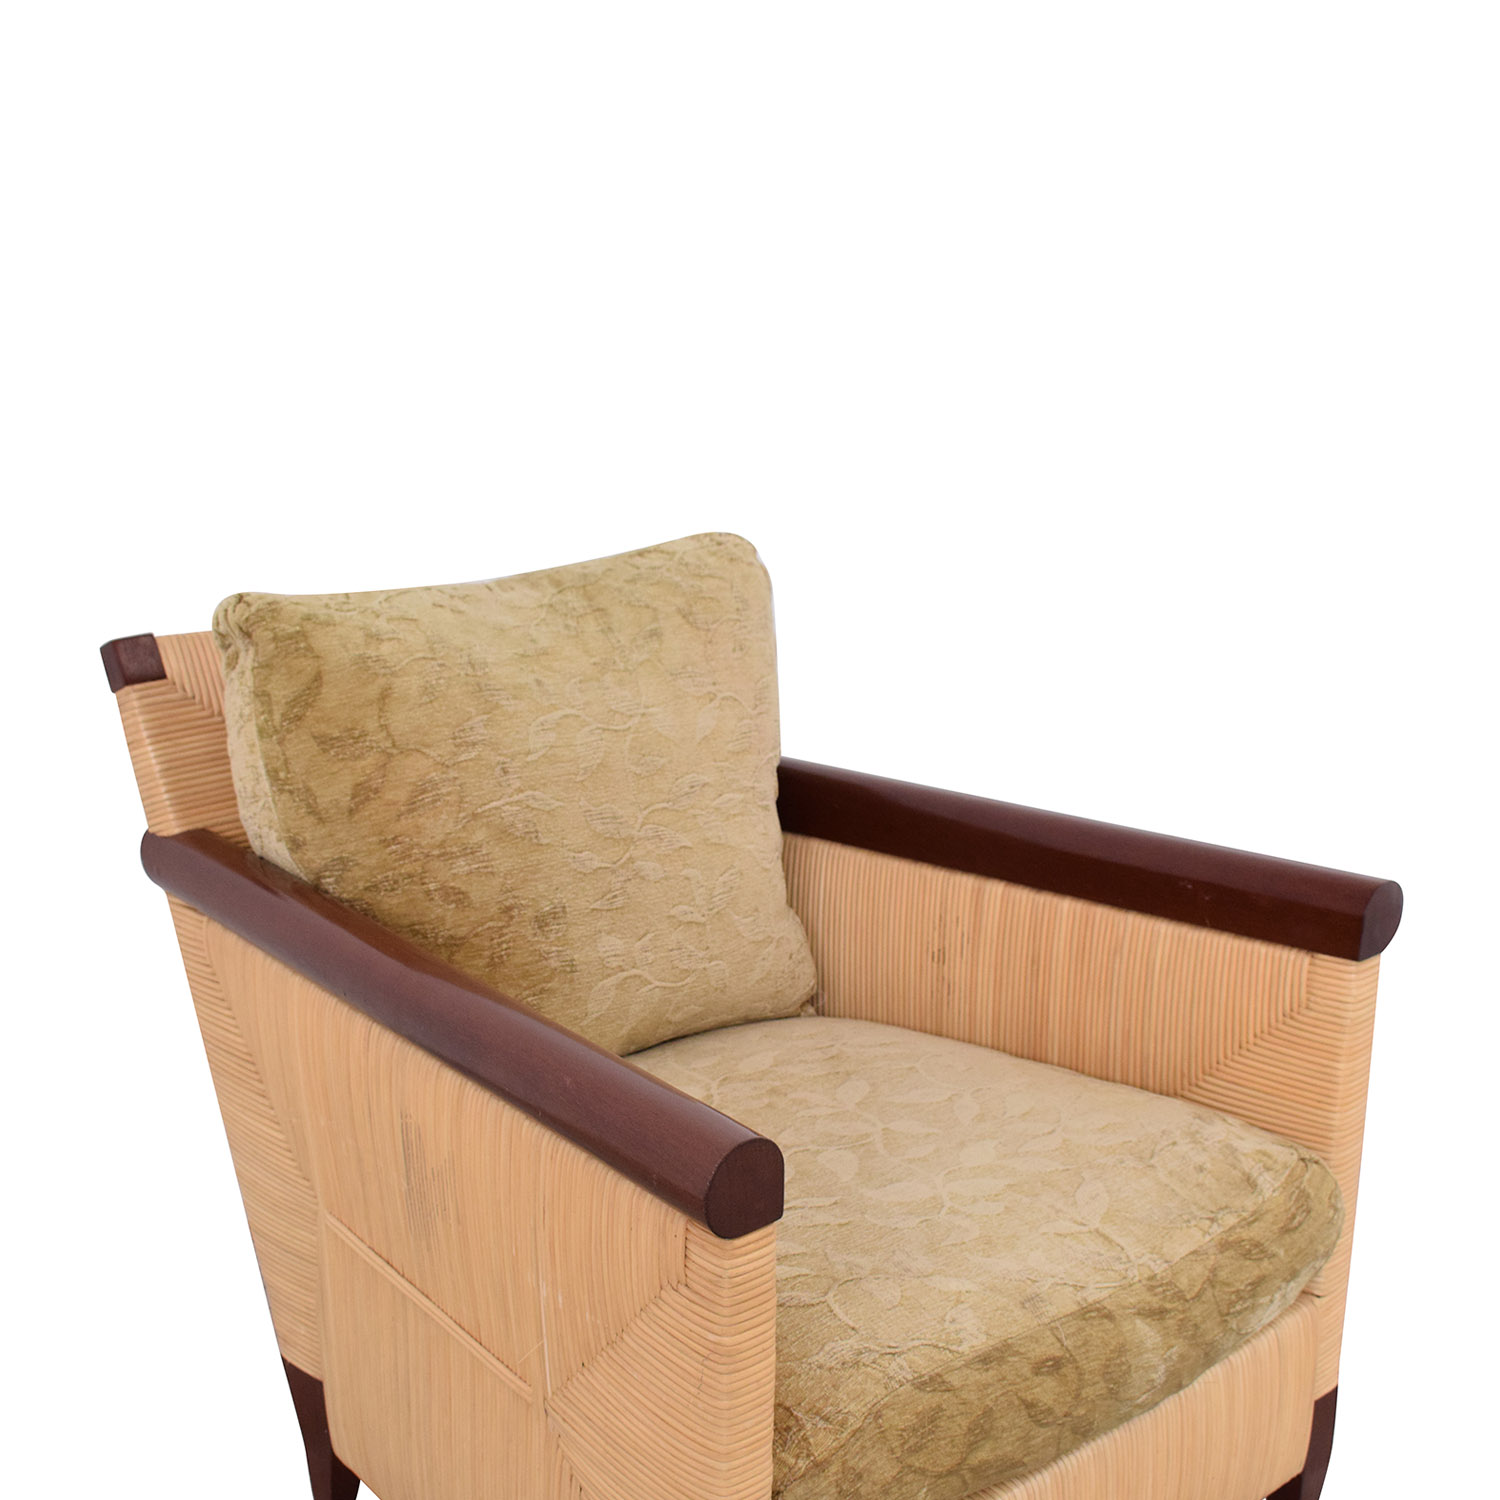 buy Donghia Donghia by John Hutton Mahogany and Wicker Lounger online